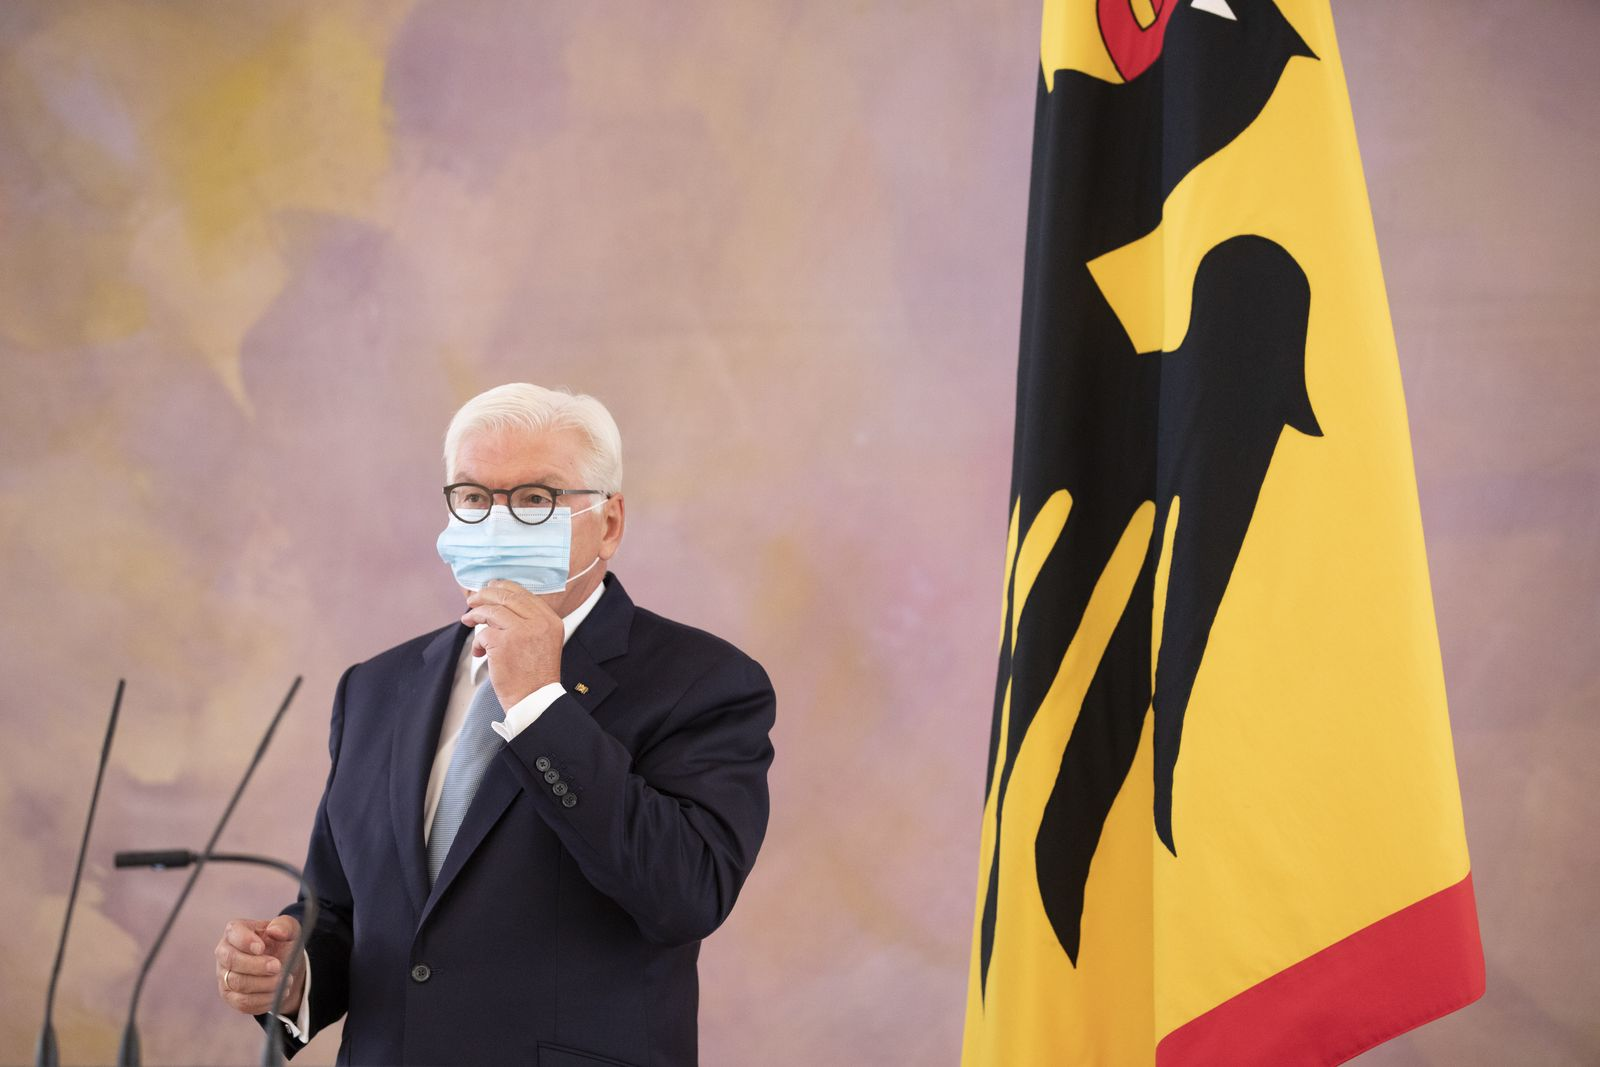 President Steinmeier Meets With Police Who Deployed At Coronavirus Protest